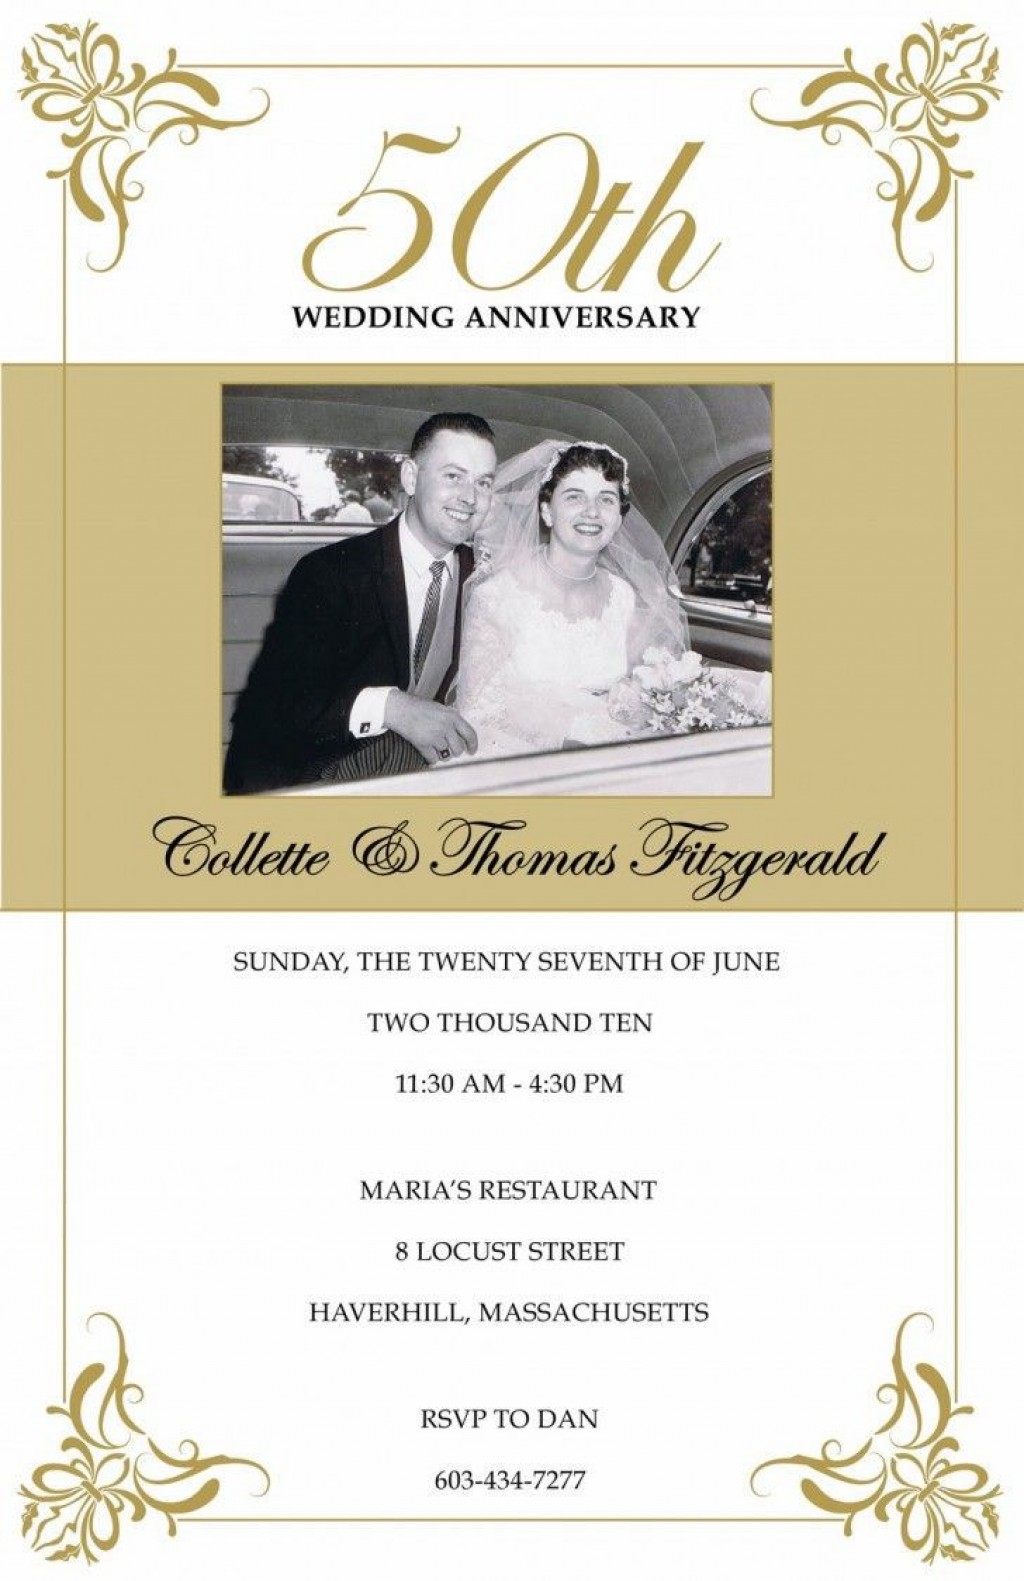 007 Imposing Free 50th Wedding Anniversary Party Invitation Template Sample  TemplatesLarge